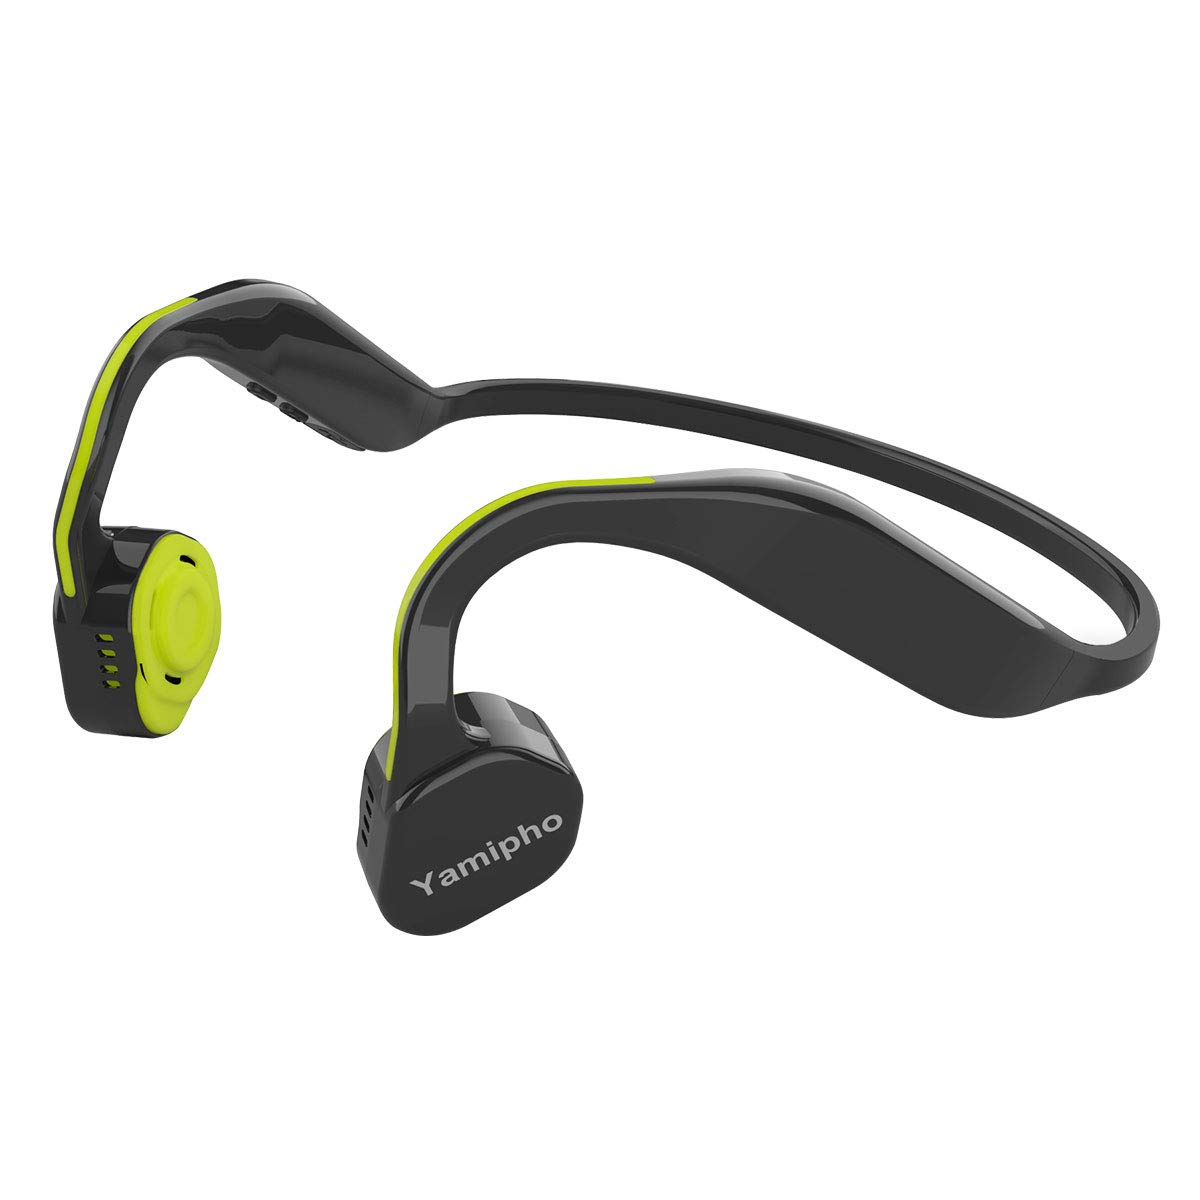 Bone Conduction Headphones Yamipho Open-Ear Wireless Bluetooth 5.0 Headphones Titanium Sports Lightweight Sweatproof with Mic Outdoor for iPhone Android Device Running Driving Working